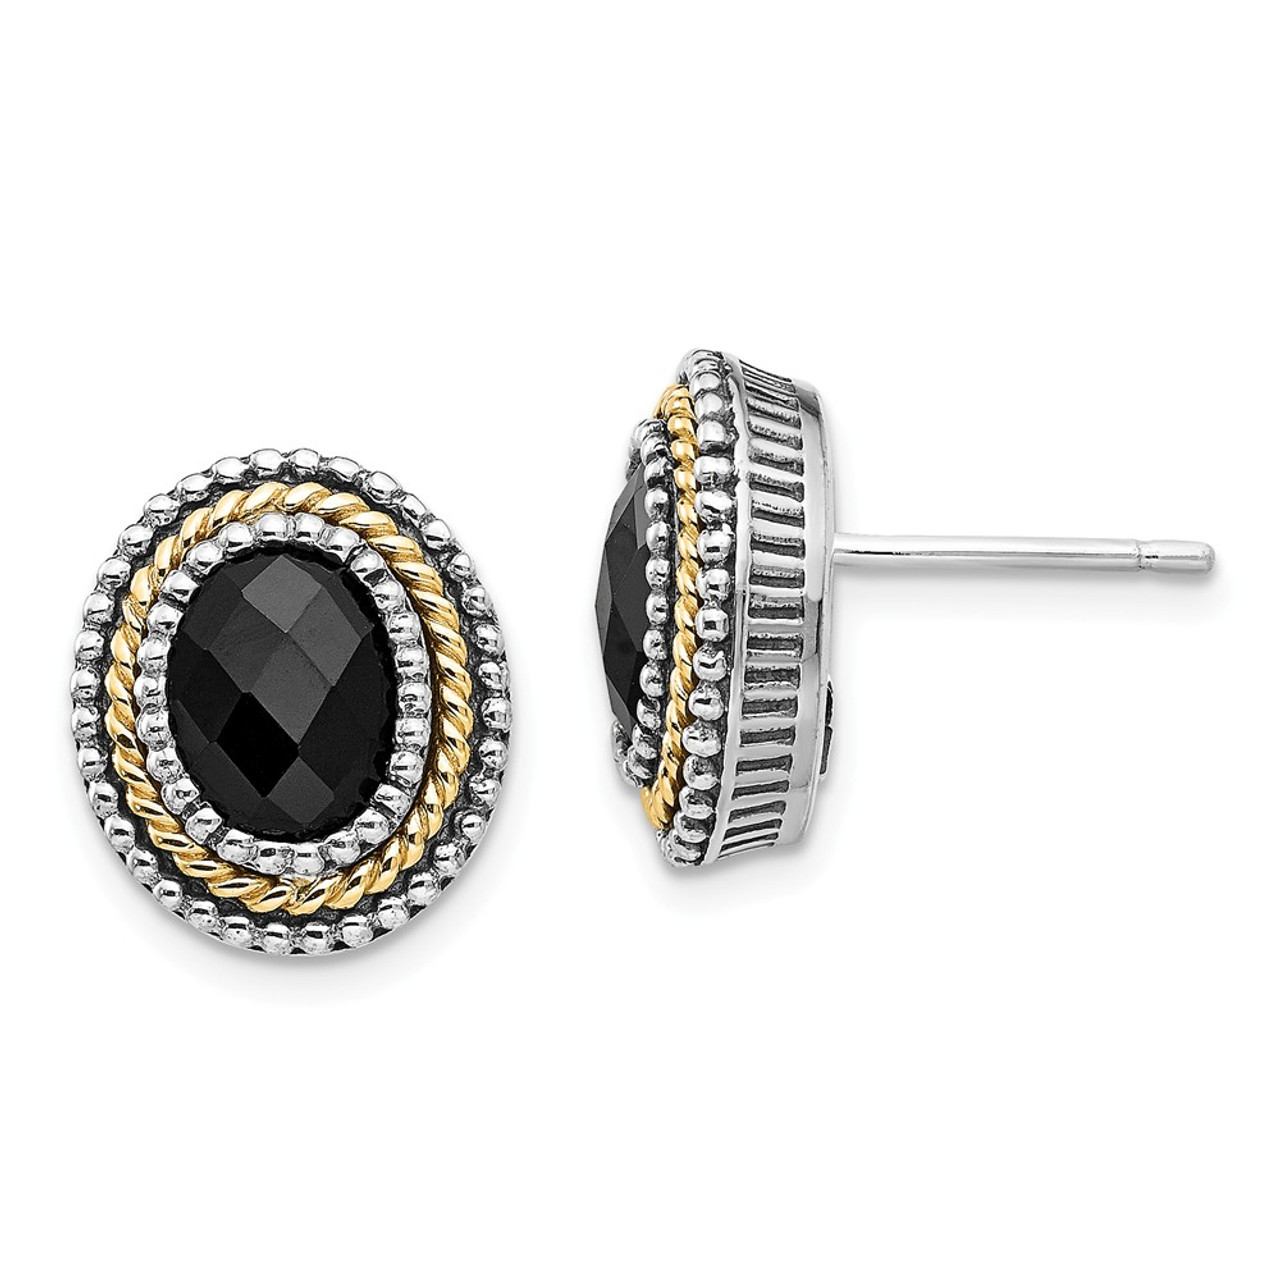 Garnet Post Earrings .925 Sterling Silver /& 14K Accent Push Back Shey Couture